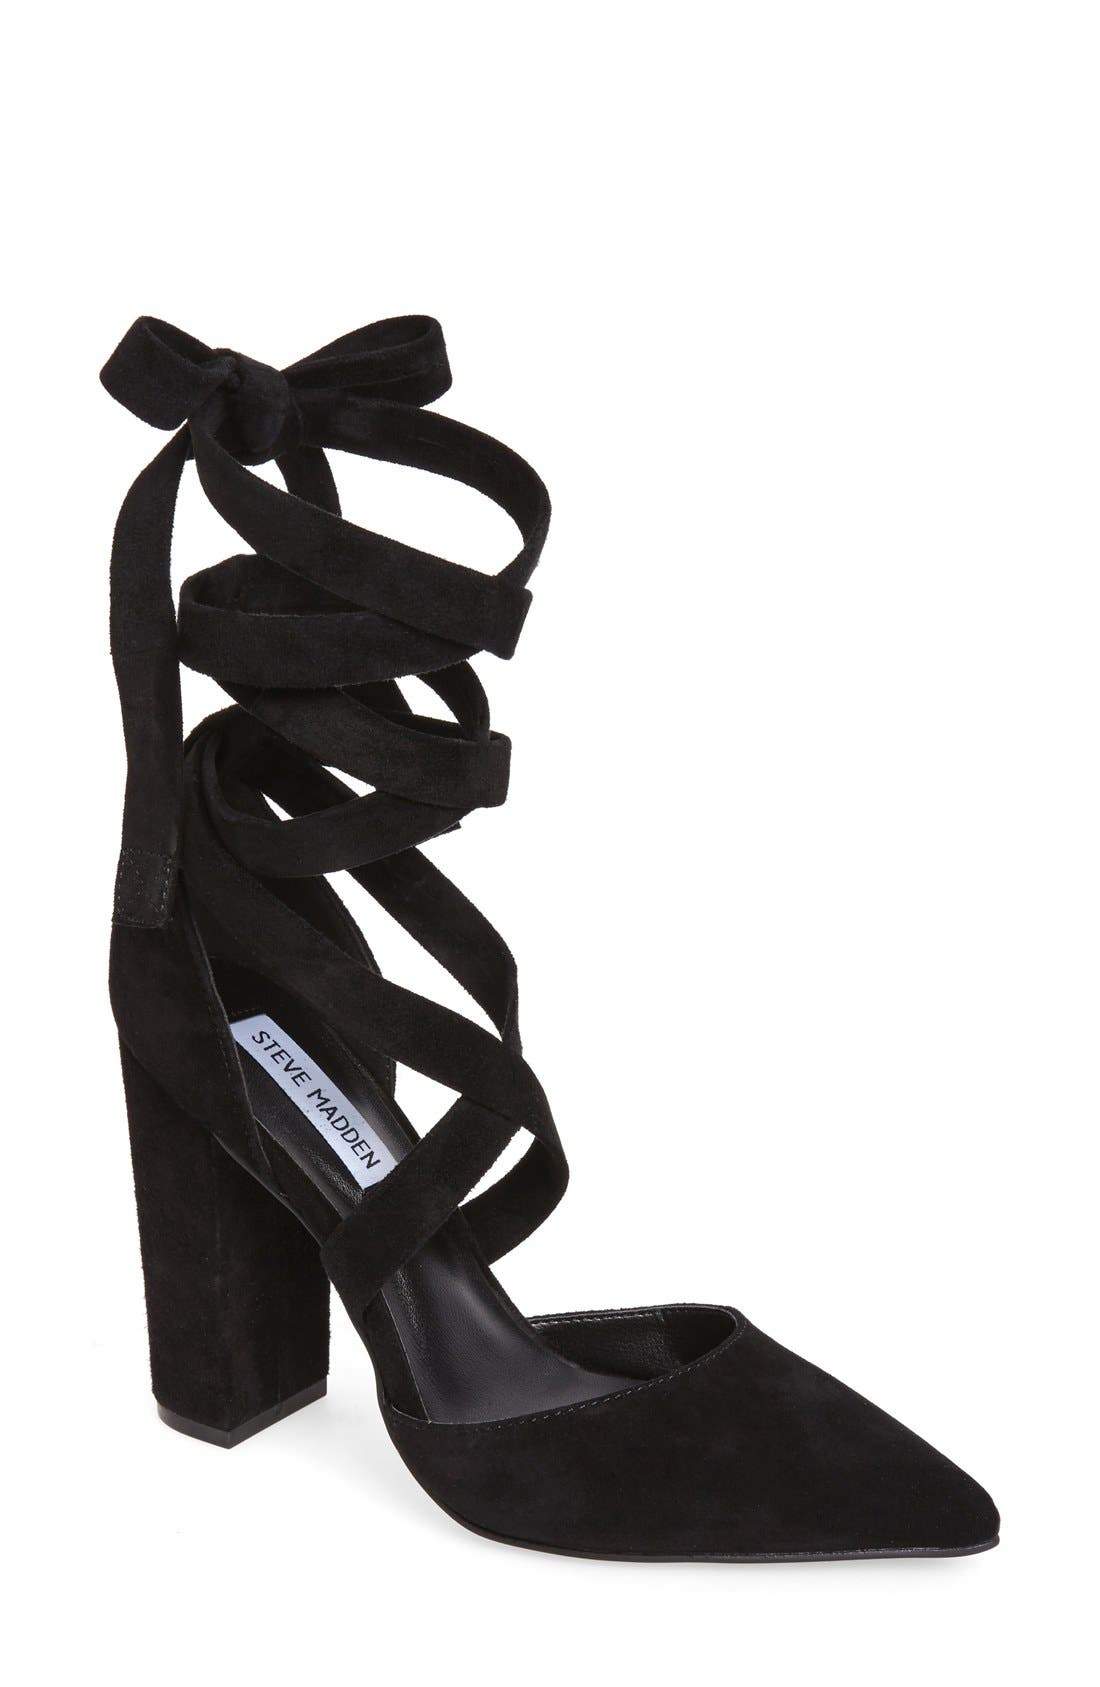 Main Image - Steve Madden Bryony Lace-Up Pump (Women)